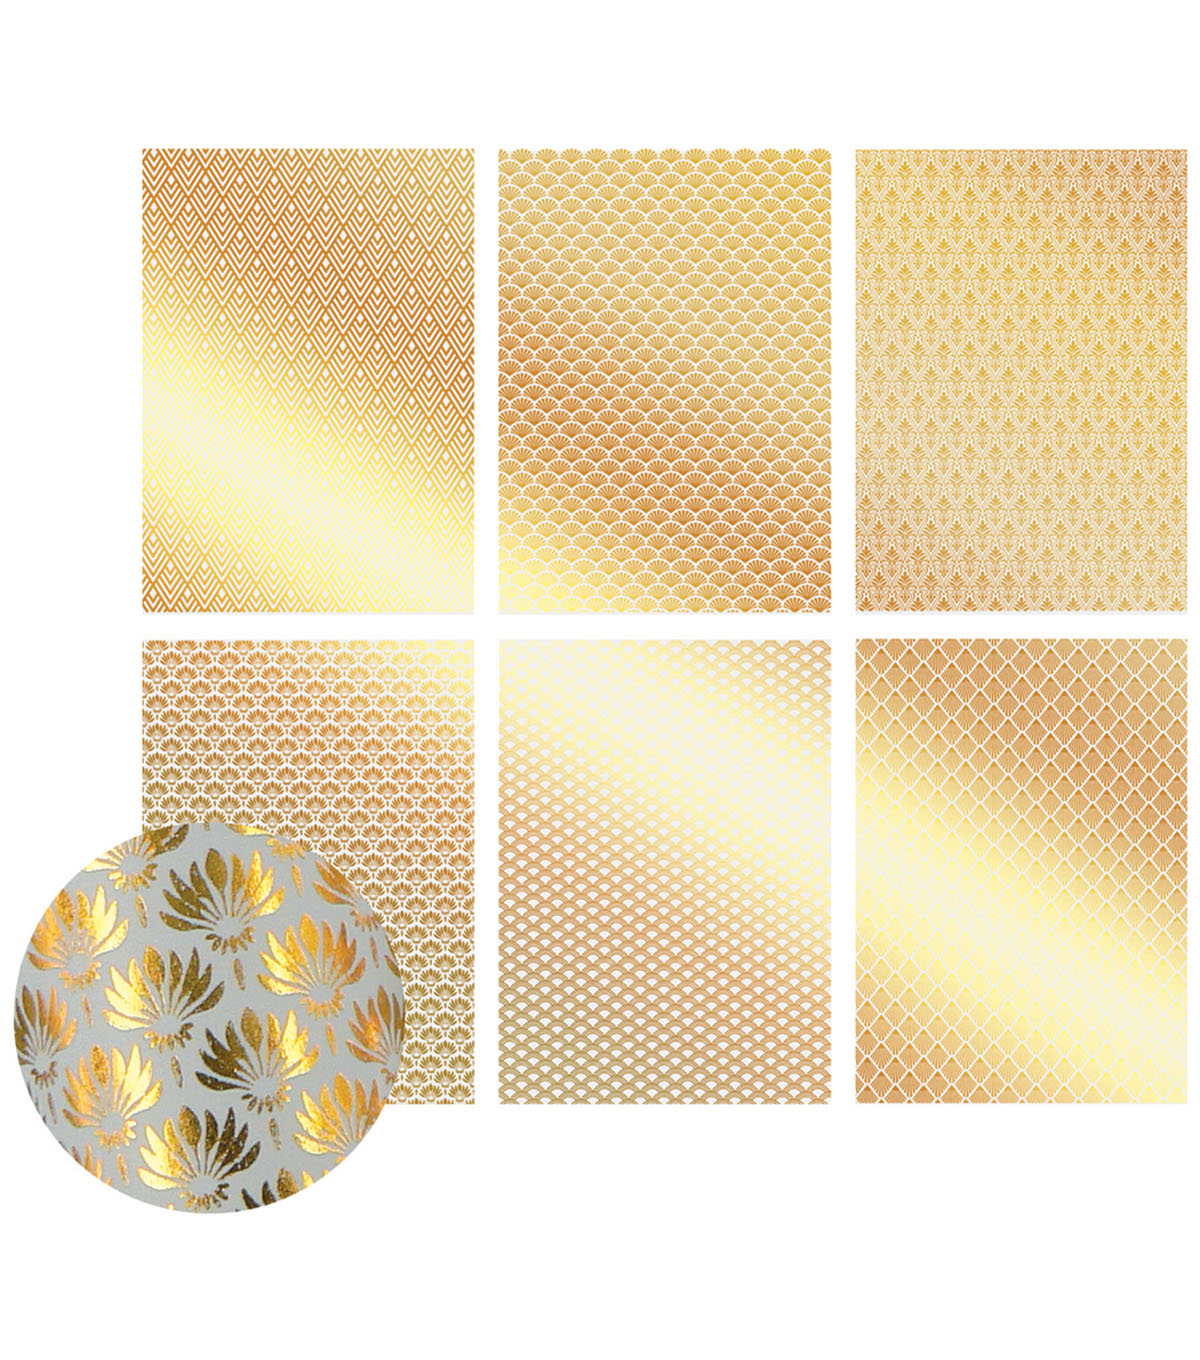 Ultimate Crafts The Ritz 12-sheet A4 Vellum Foil Papers-Gold